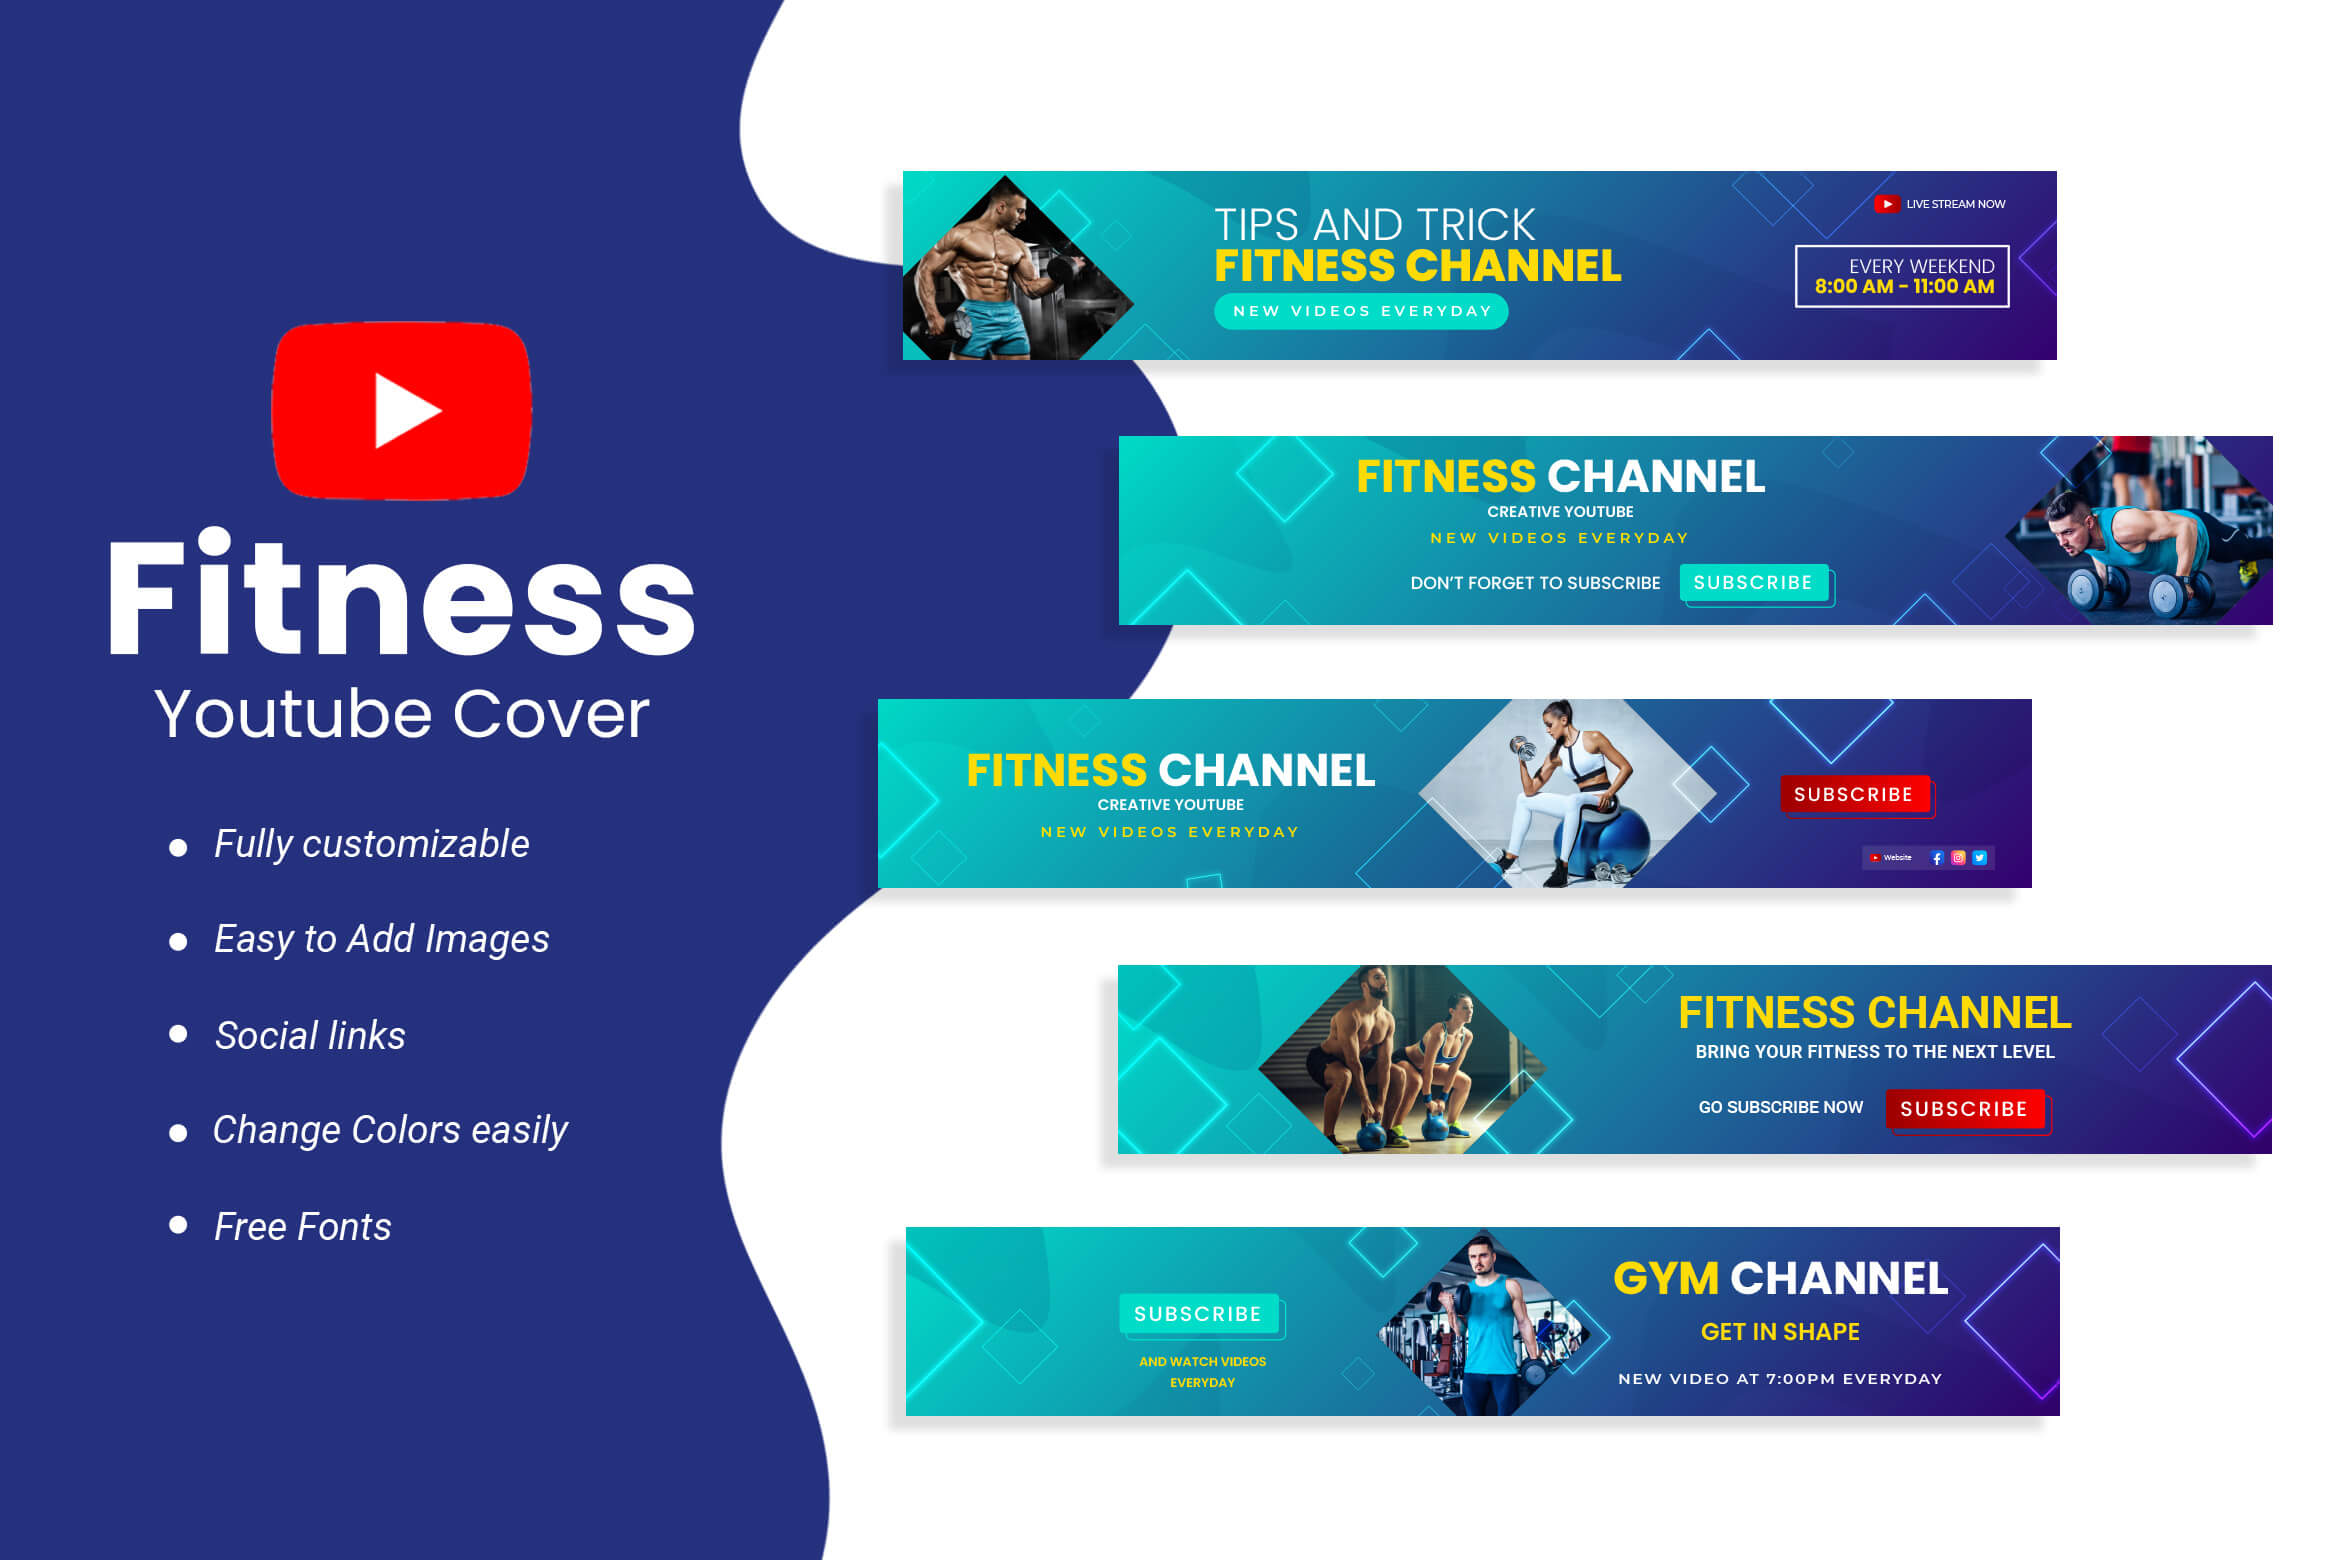 Fitness Youtube Cover